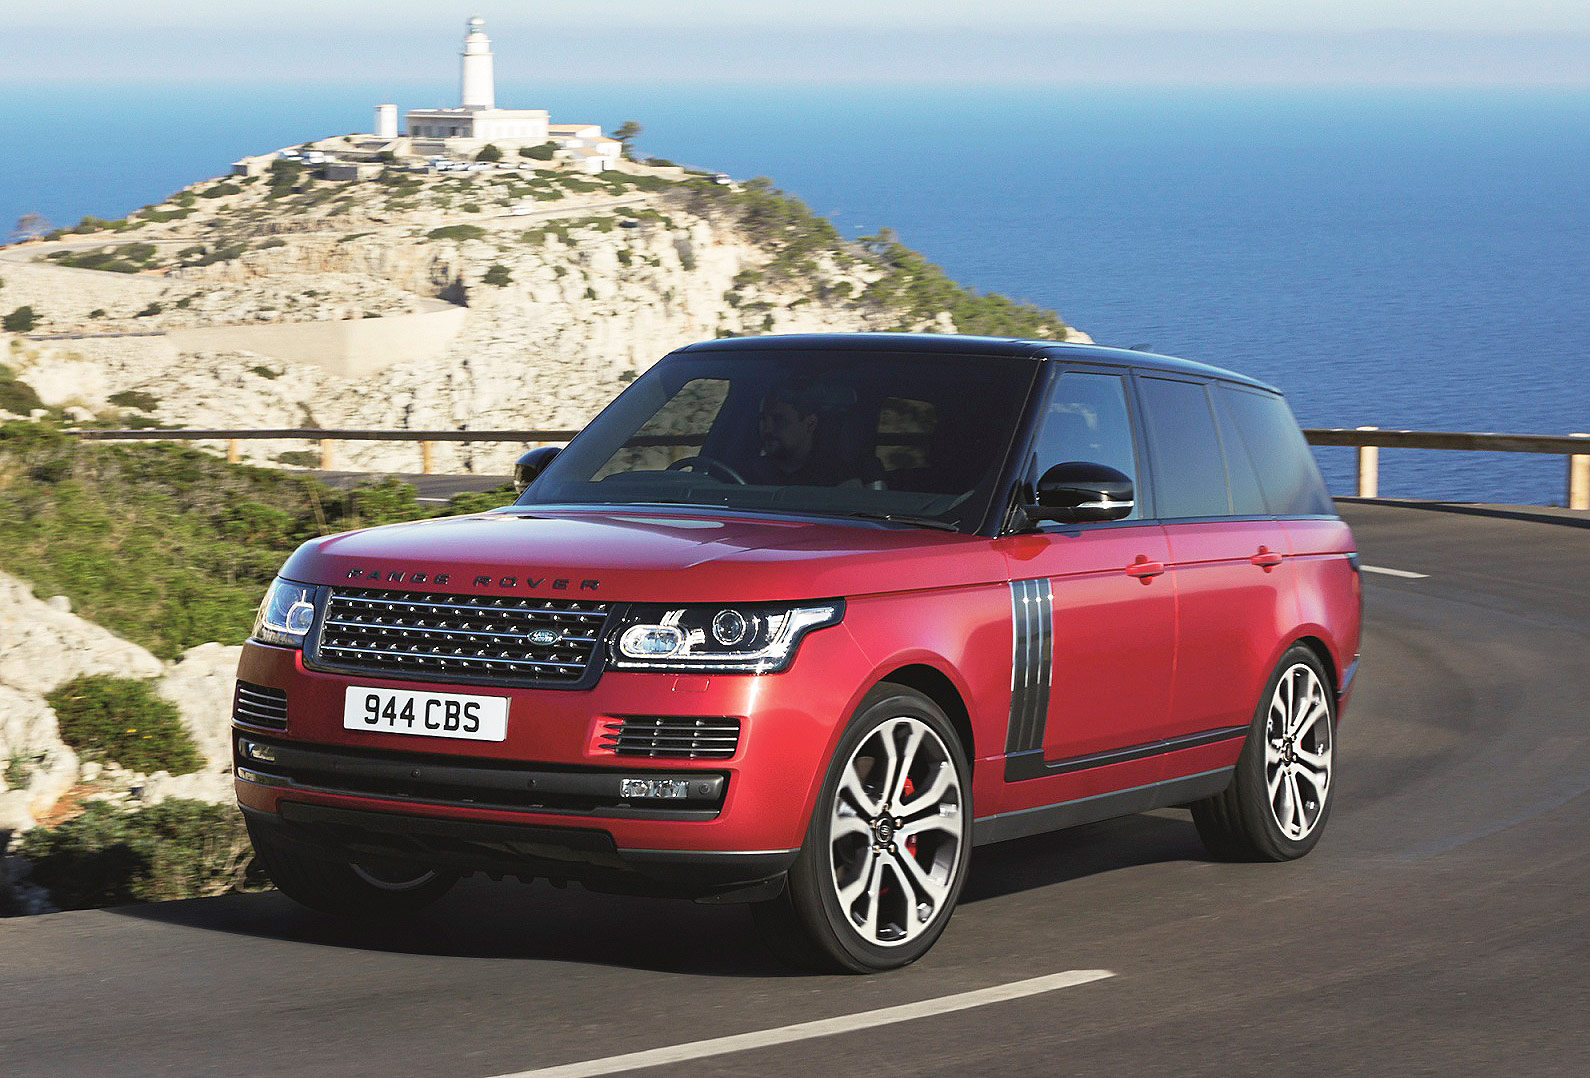 SVAutobiography Dynamic – The Most Powerful Production Range Rover To Date